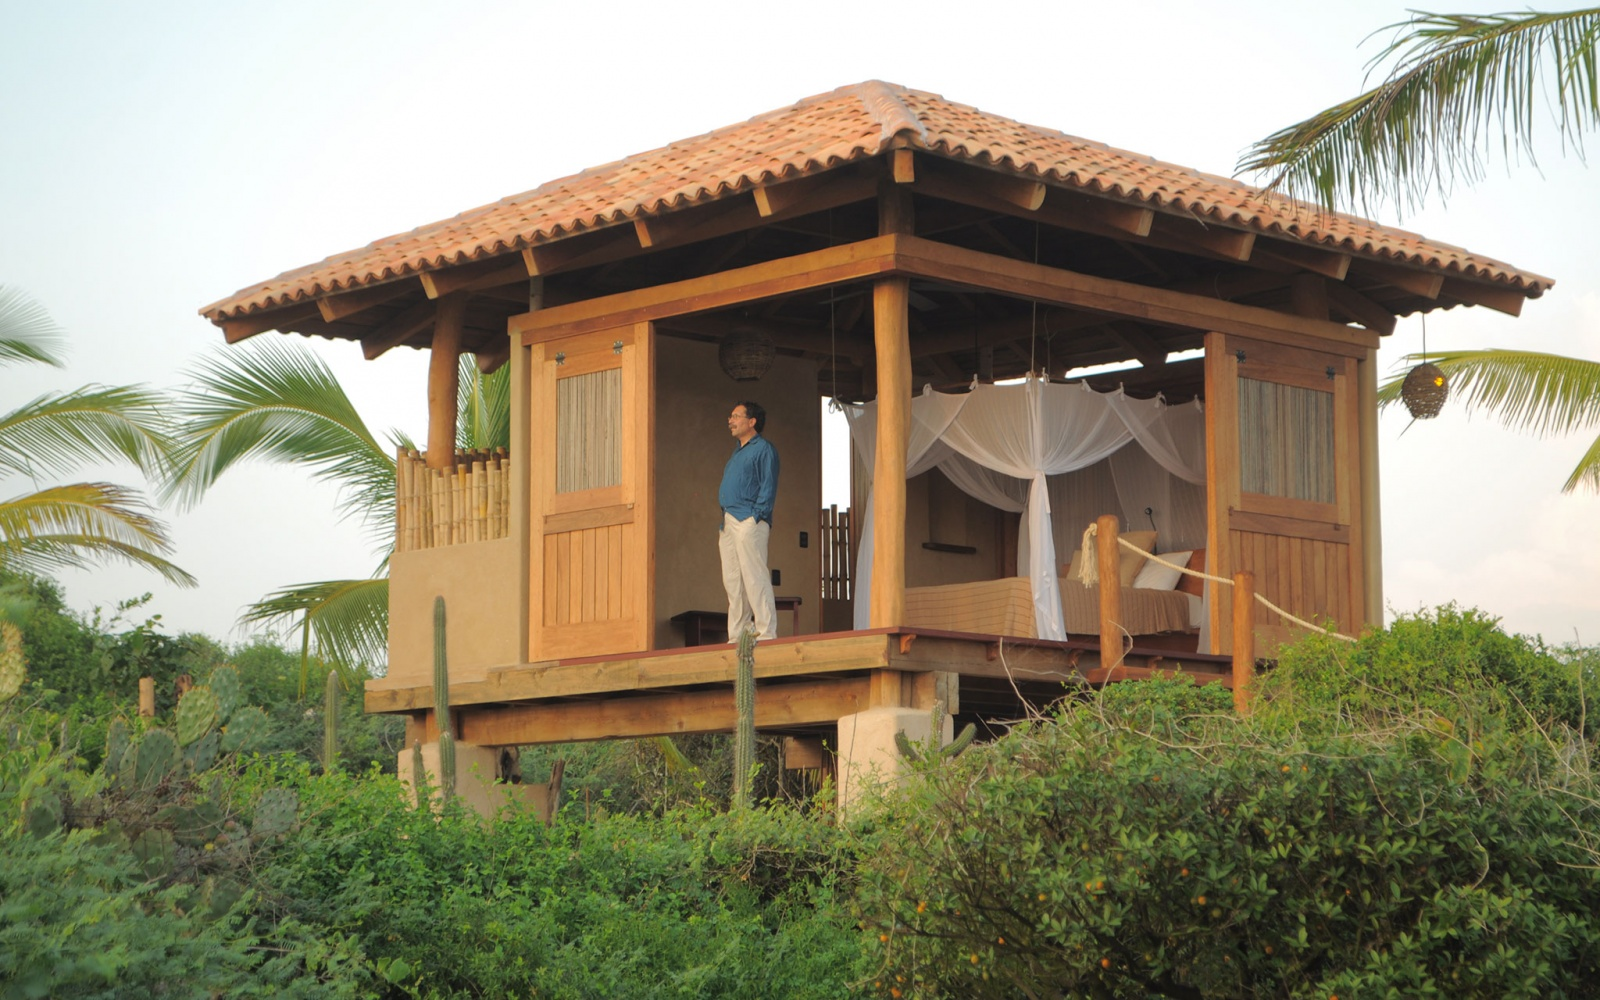 Playa Viva tree house hotel, Juluchuca, Mexico